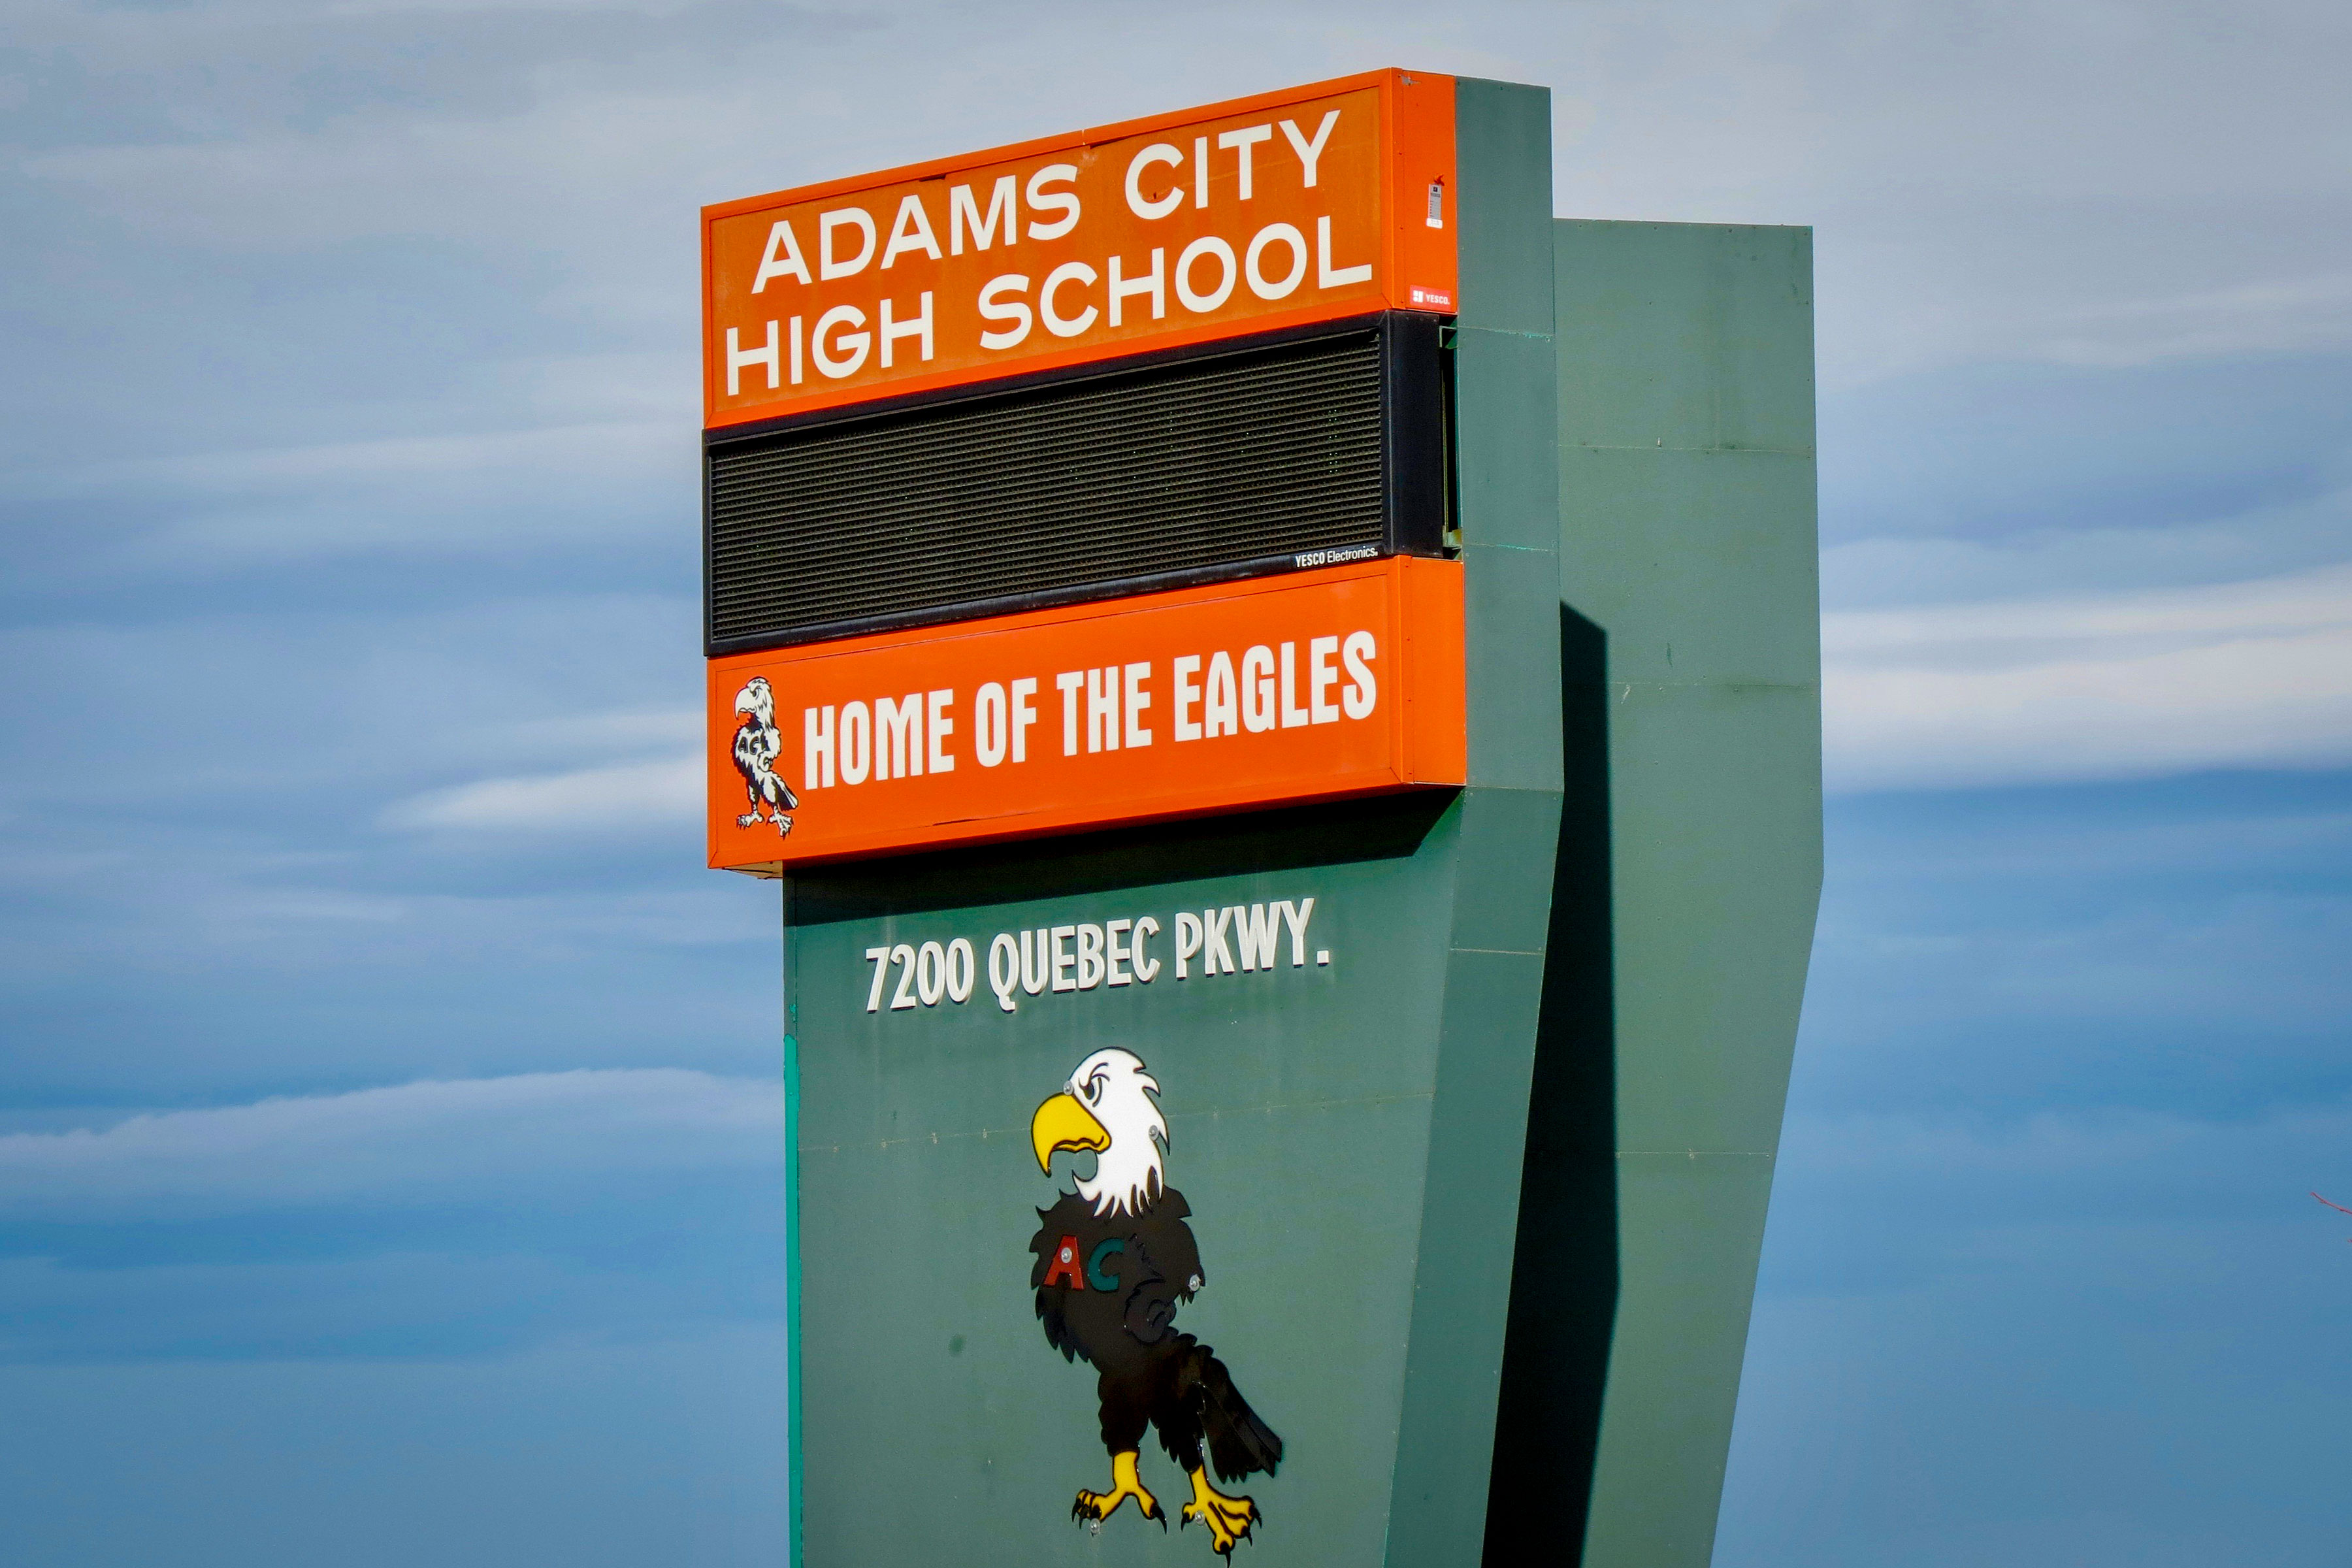 "<p>Adams City High has received the state's two lowest rankings for eight years. The state says the new external manager could recommend it be managed by an external entity, convert to a charter school, or gain ""innovation status.""</p>"